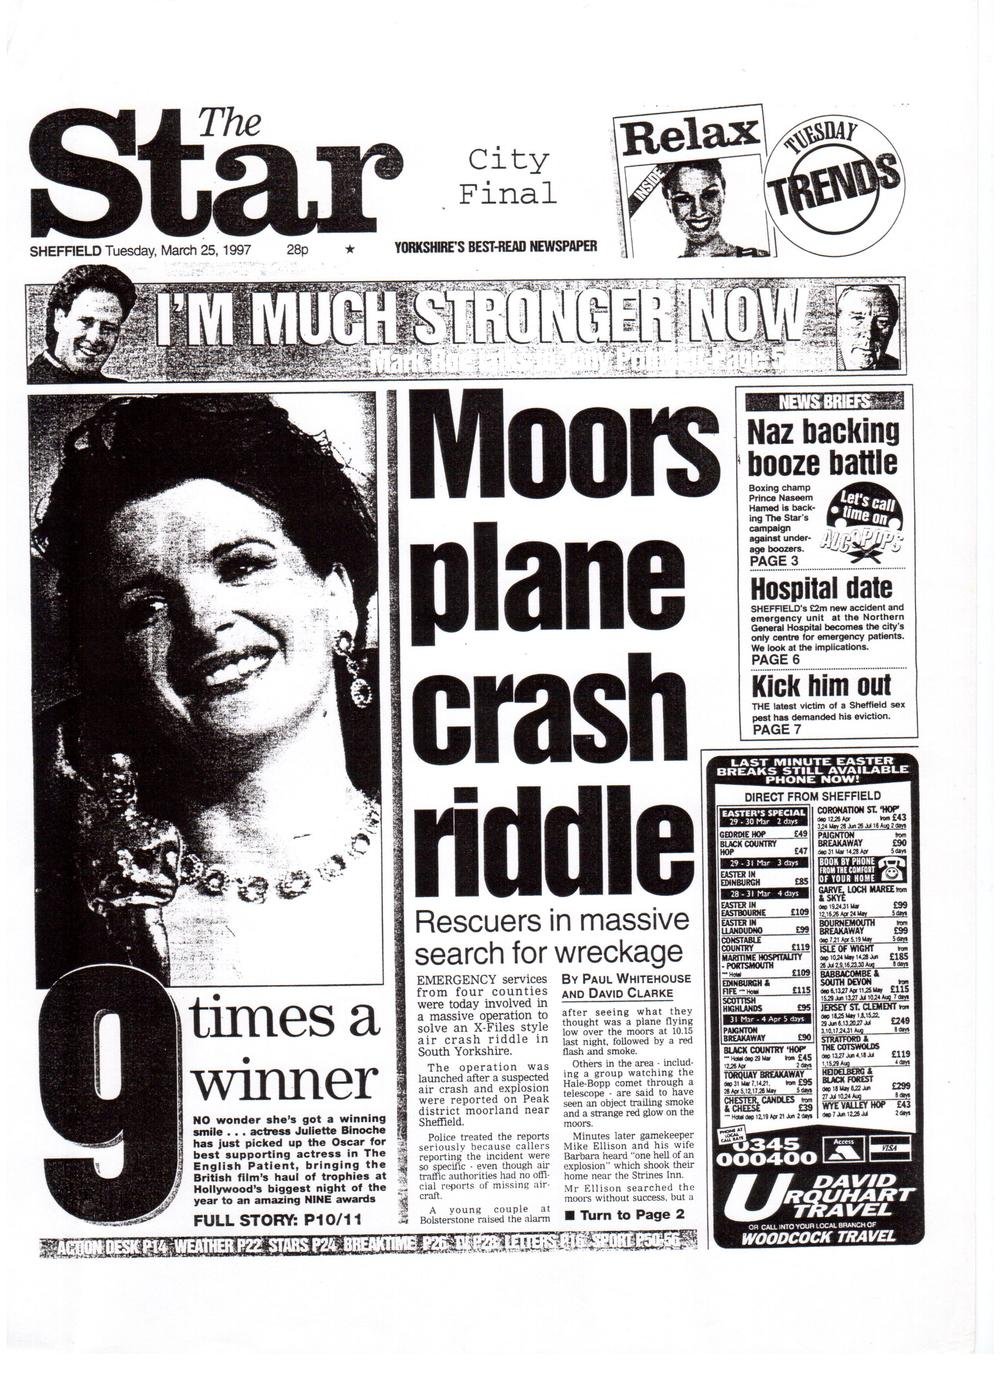 The crash that never was... Original article in The Sheffield Star, March 25th 1997